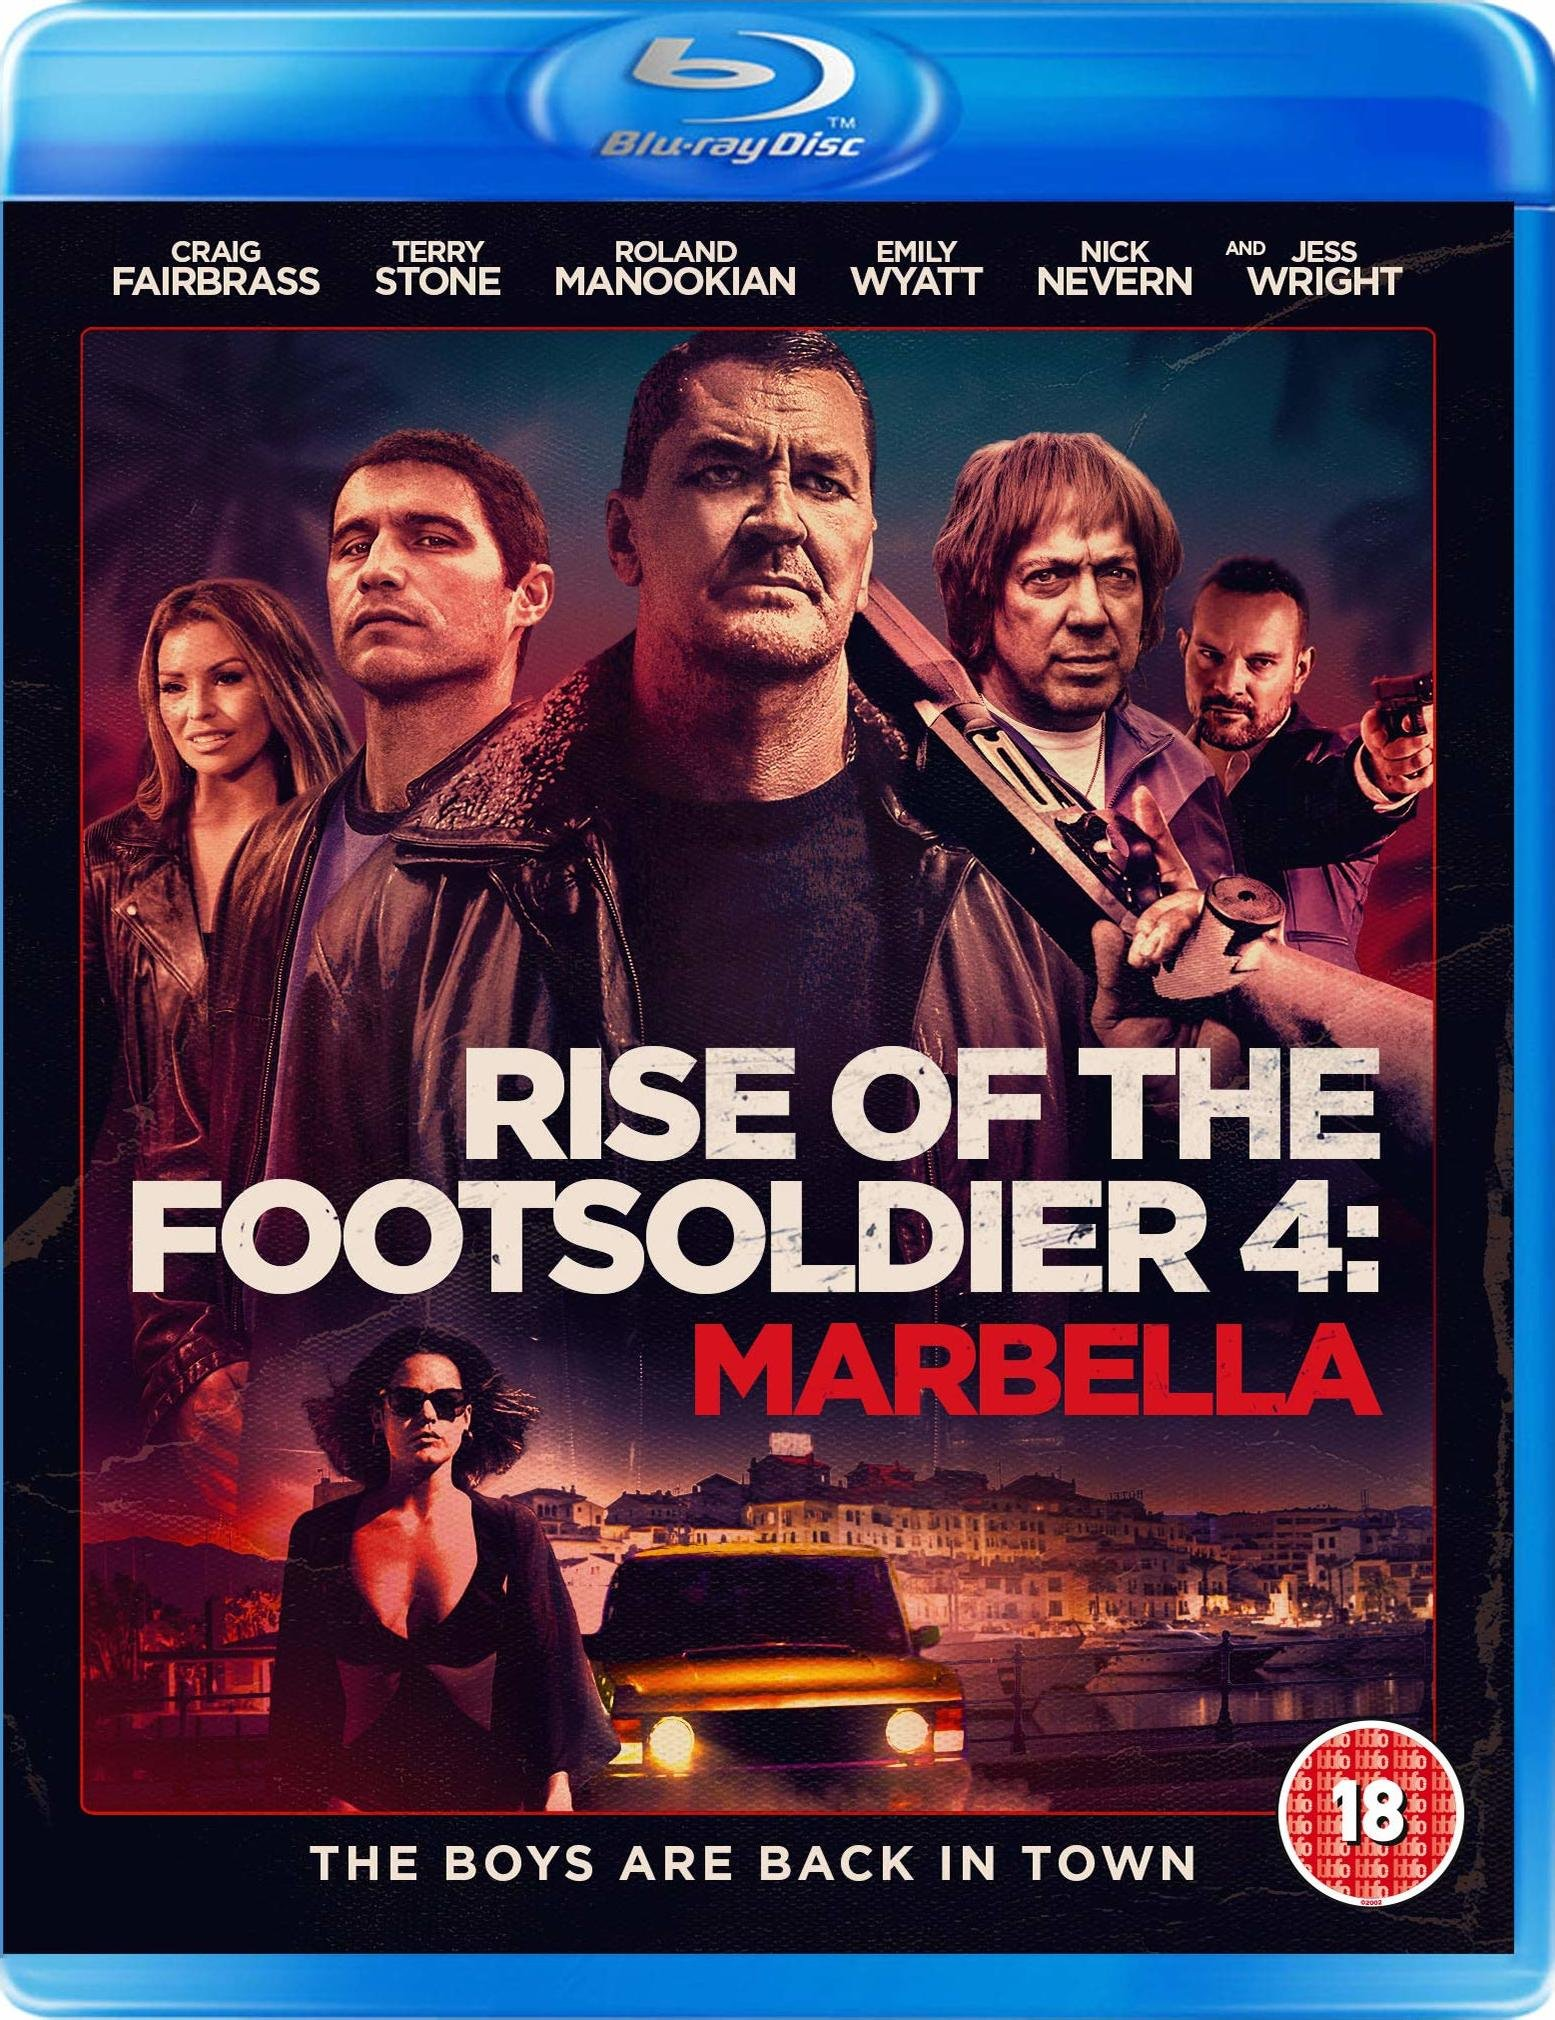 Rise of the Footsoldier: Marbella (2019) poster image